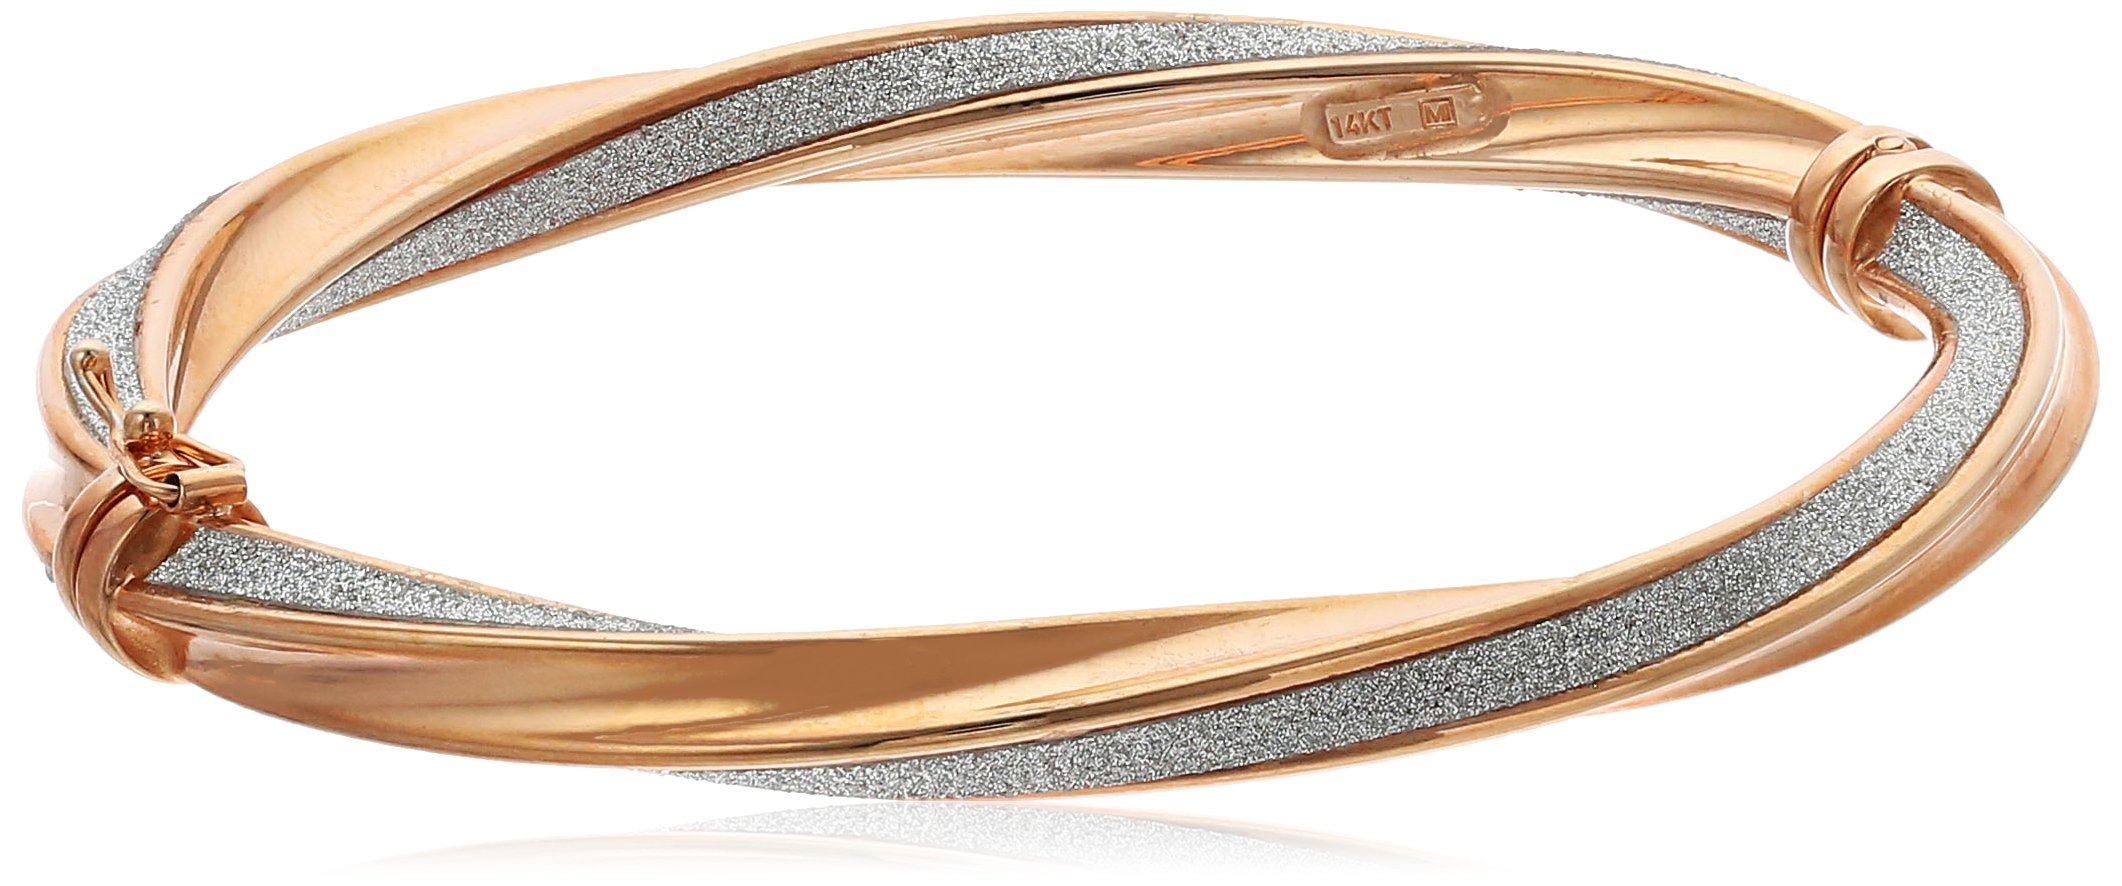 14k Rose Gold Italian Twisted 6 mm Tube Hinged with Pave Style Glitter Bangle Bracelet by Amazon Collection